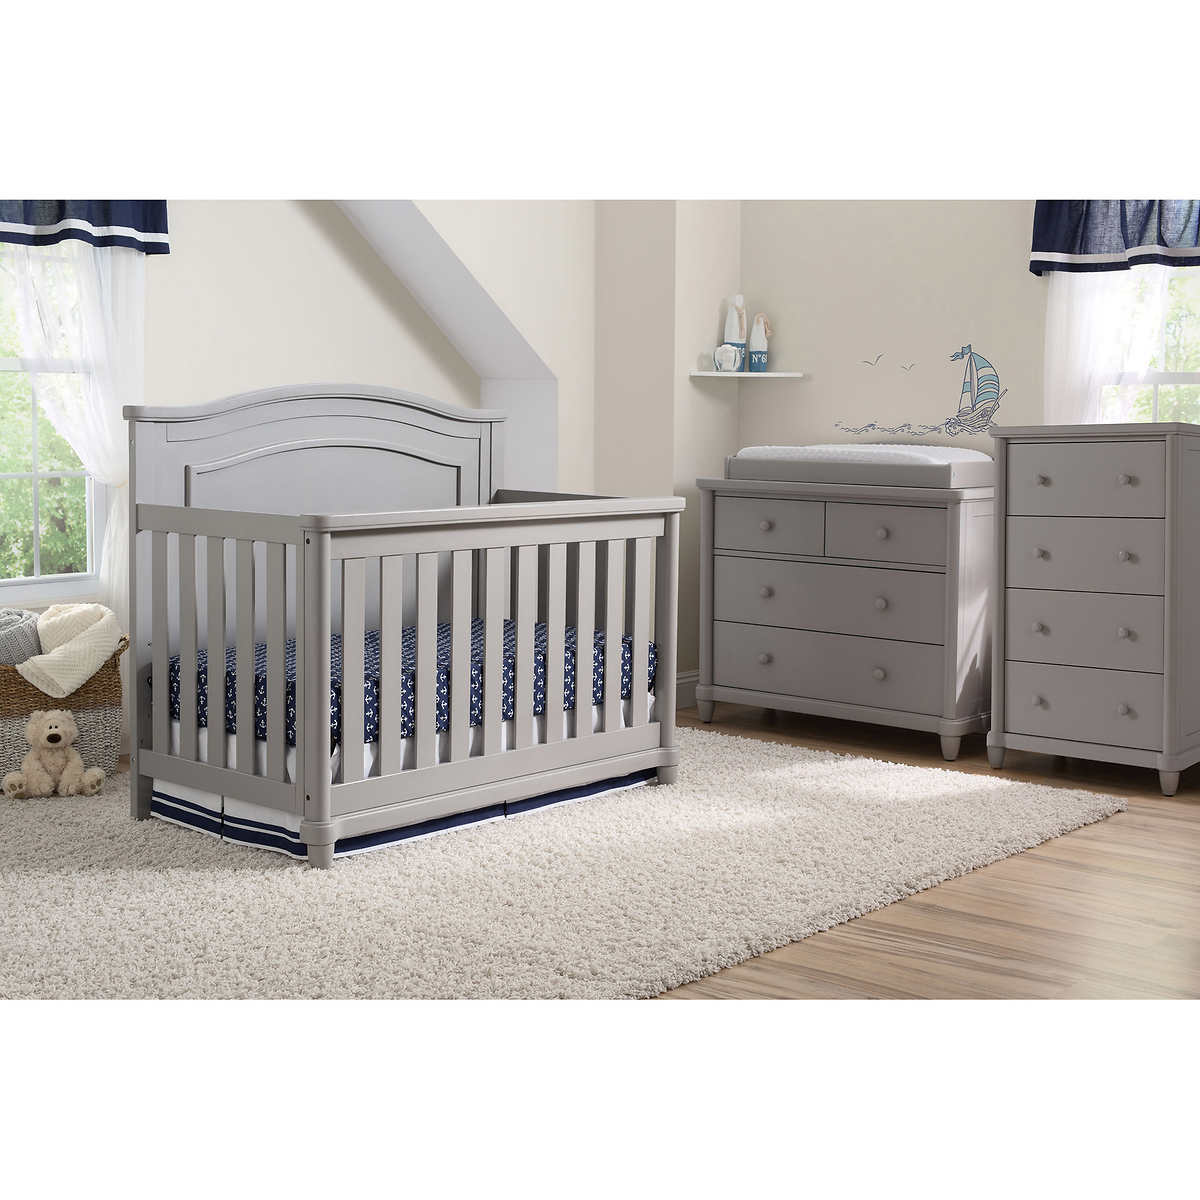 Simmons Kids Sophia 3 Piece Nursery Furniture Set Gray